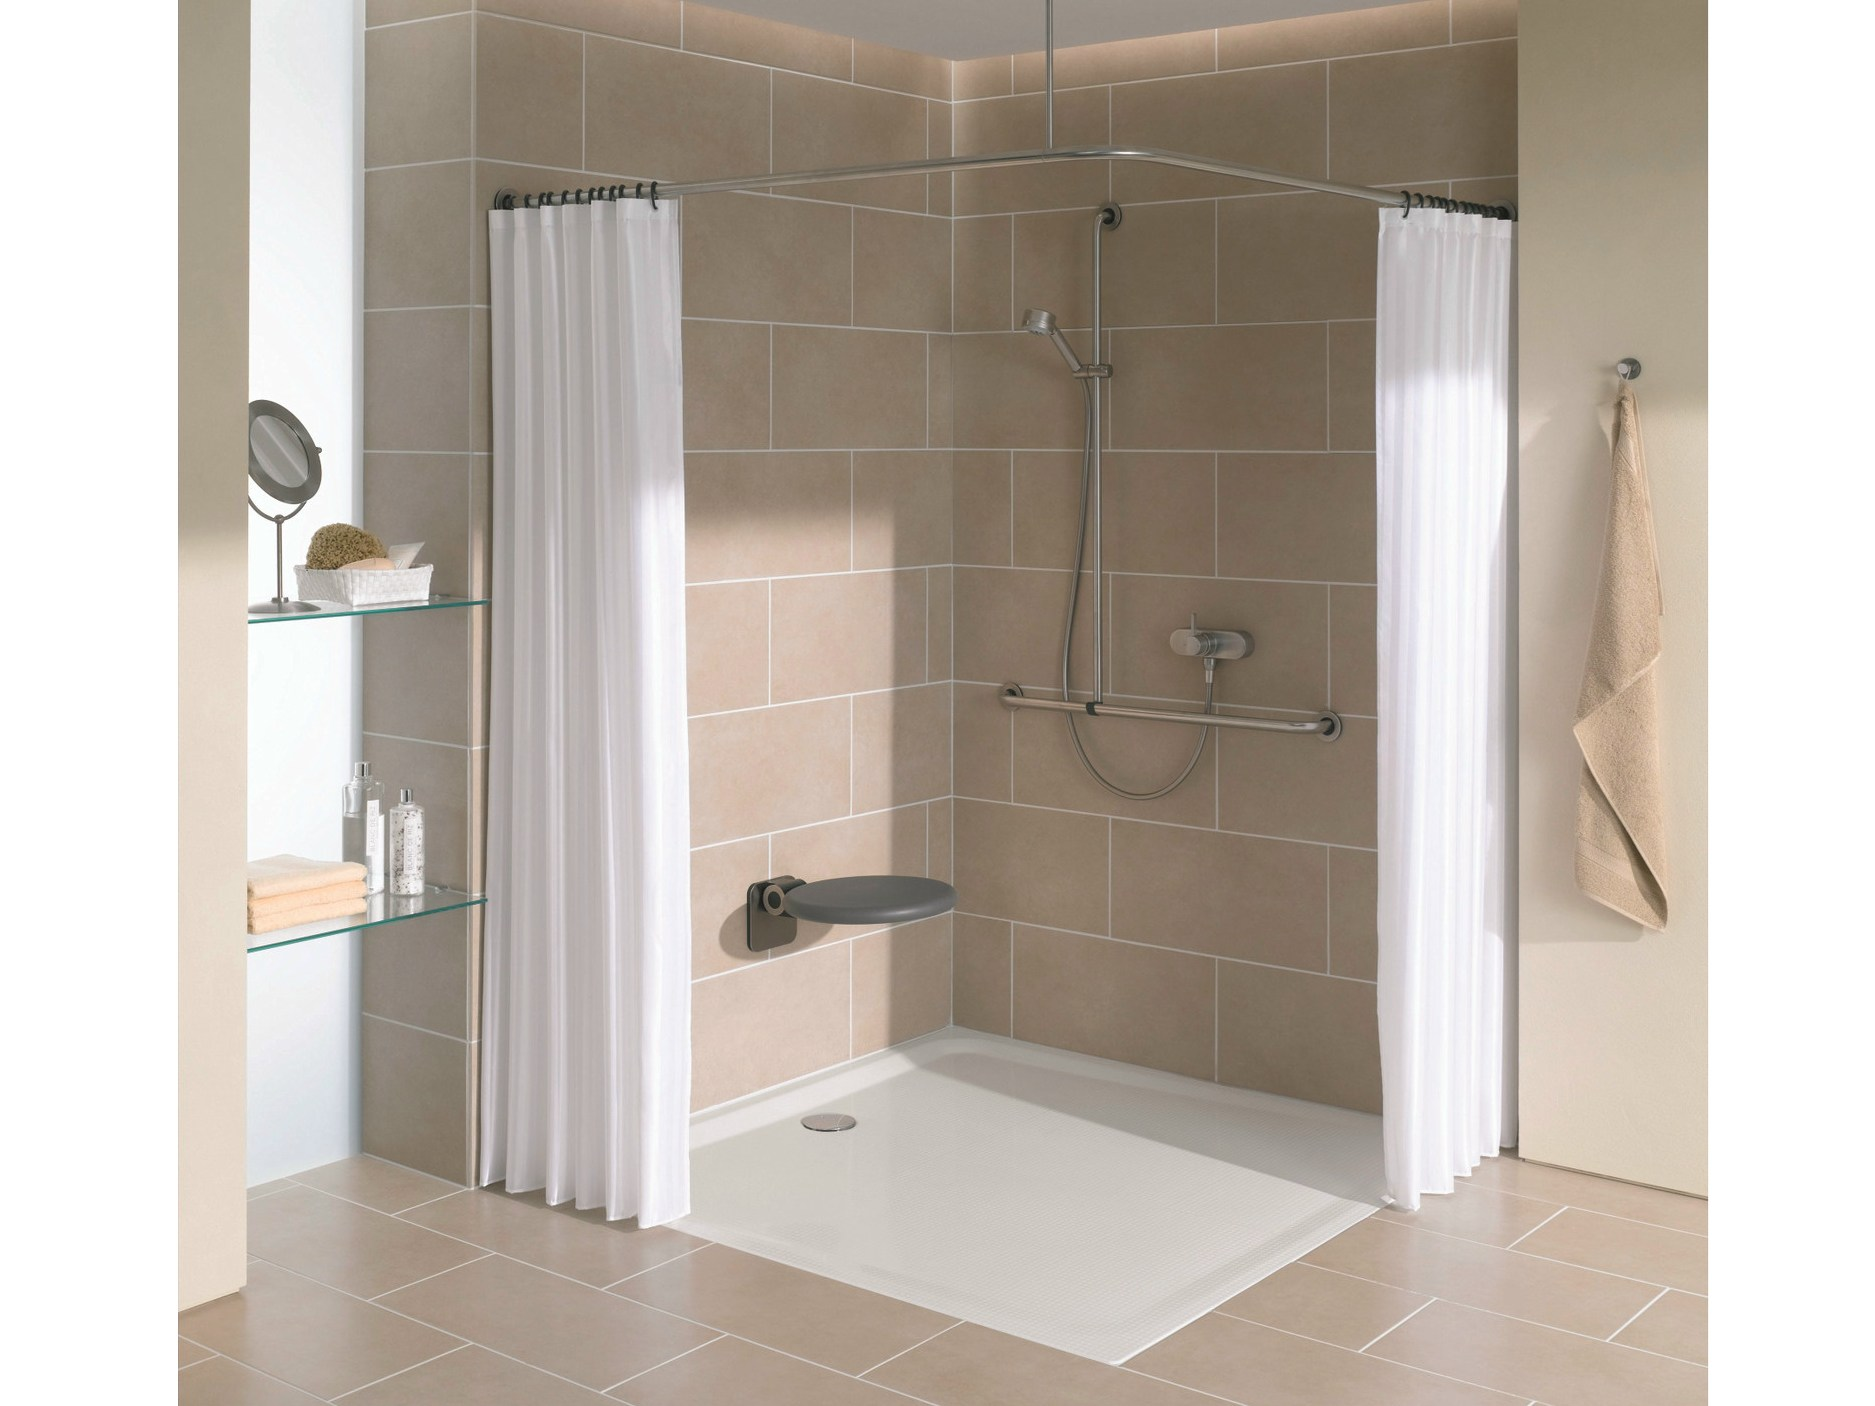 SUPERFLACH Square shower tray by Bette